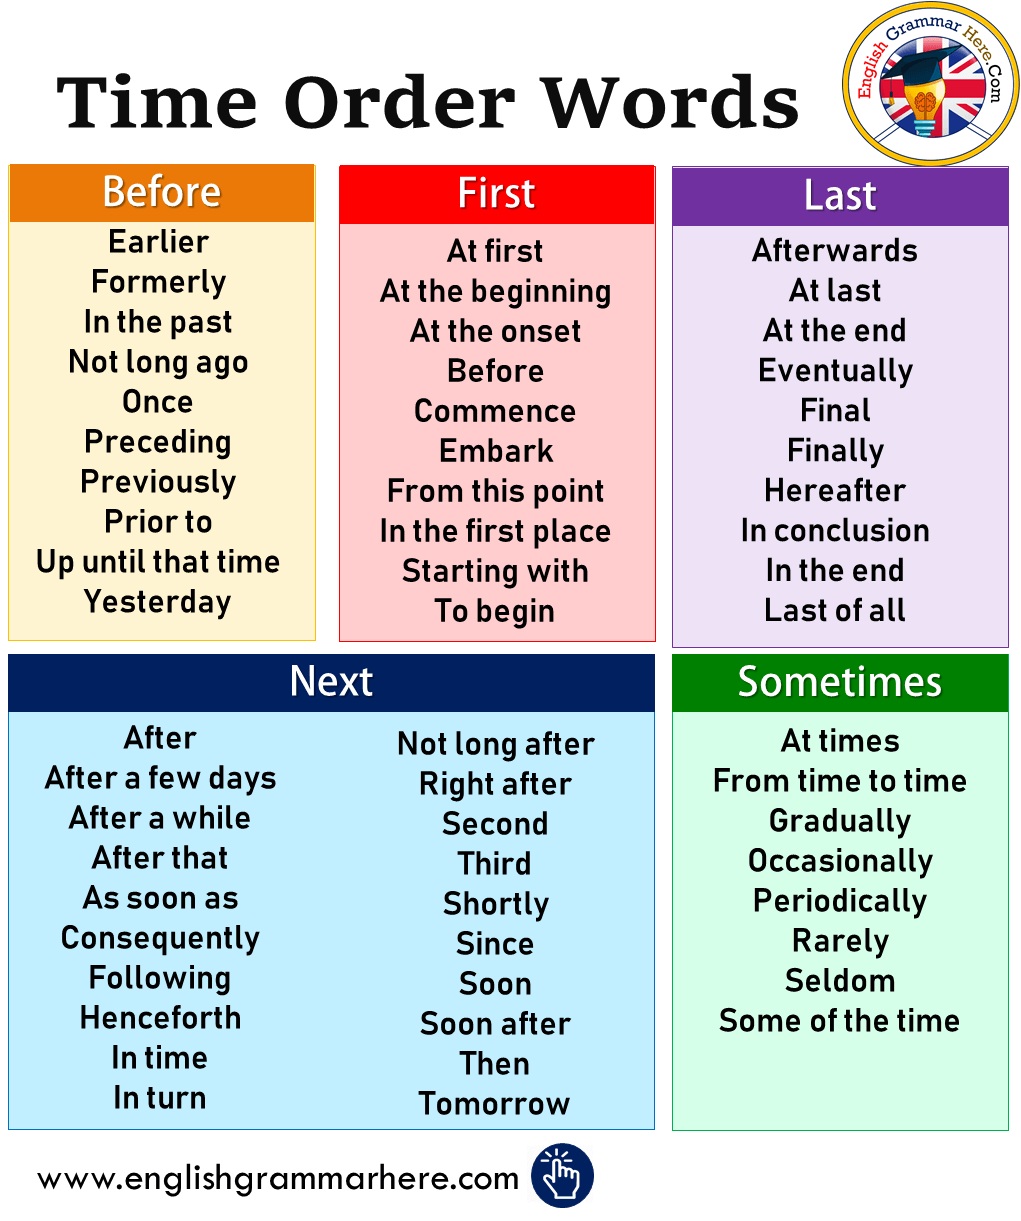 Peel Essay Writing Peel Essay Writing Peelessaywriting In 2021 English Writing Skills English Words Time Order Words [ 1221 x 1021 Pixel ]